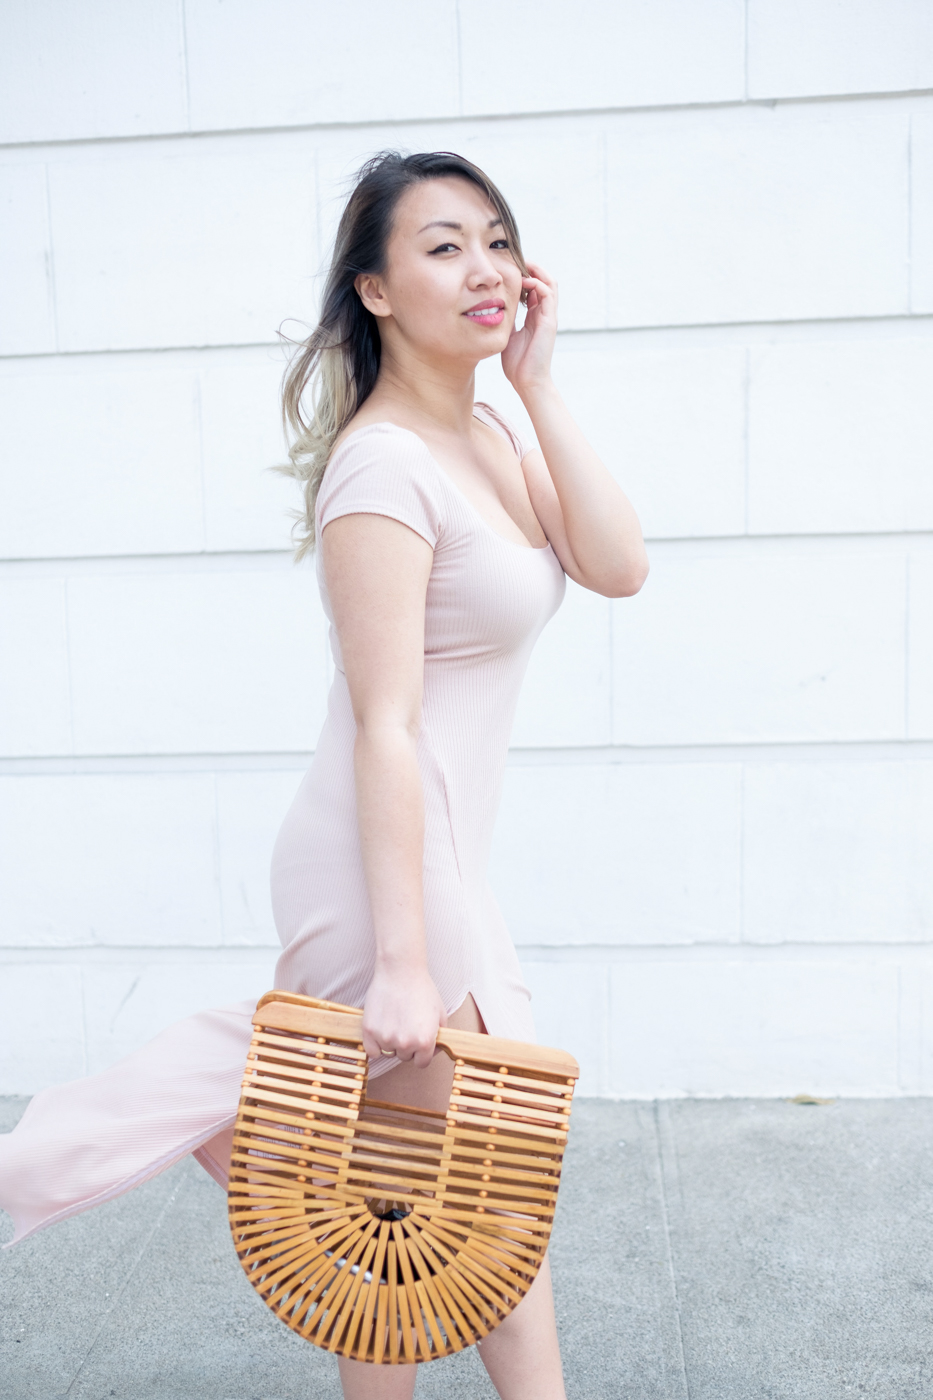 Blush Dress & Bamboo Ark Bag | The Chic Diary